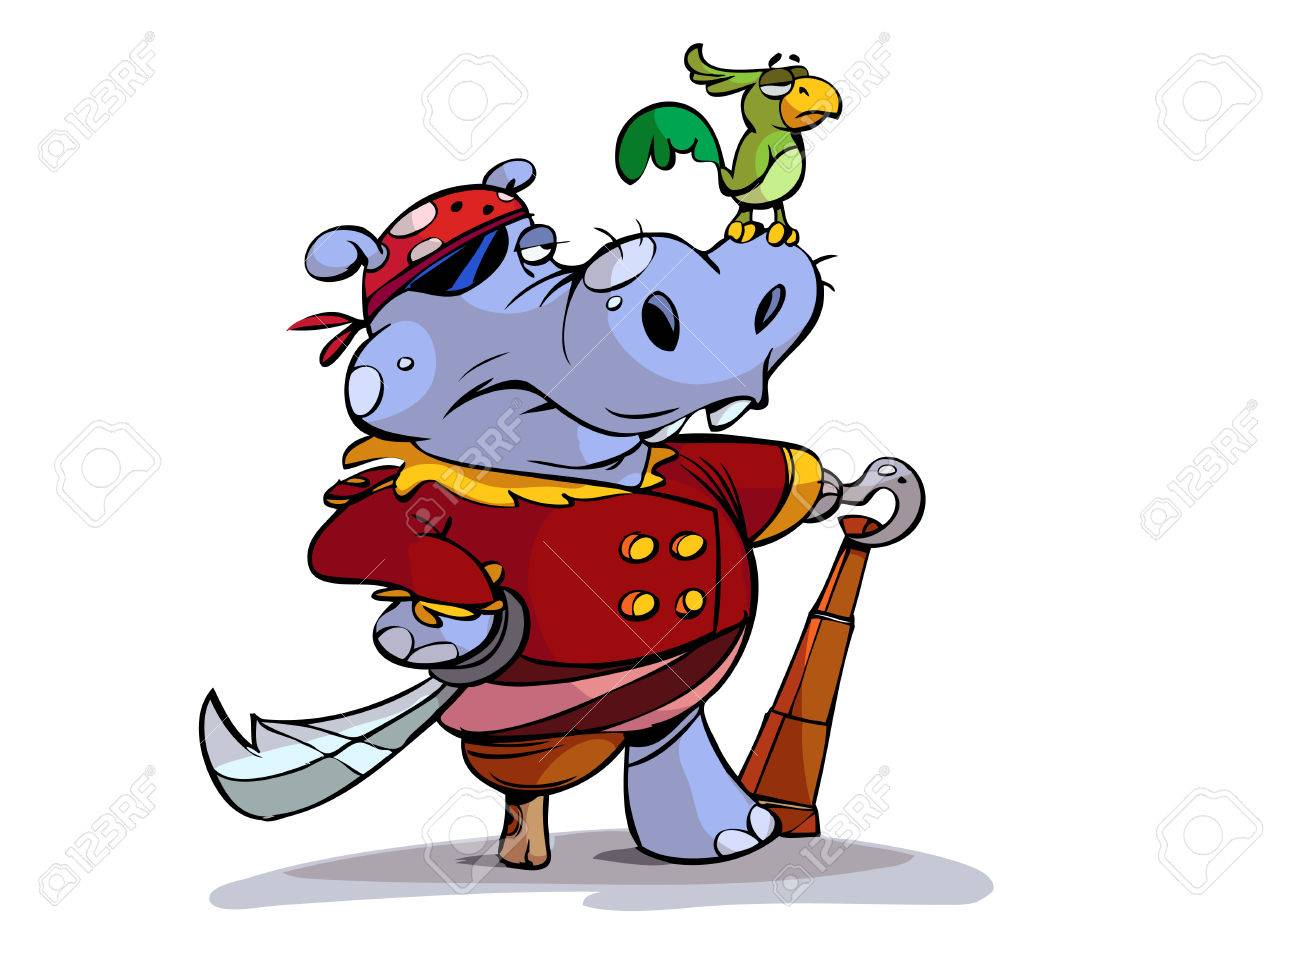 Image result for royalty free images house hippo